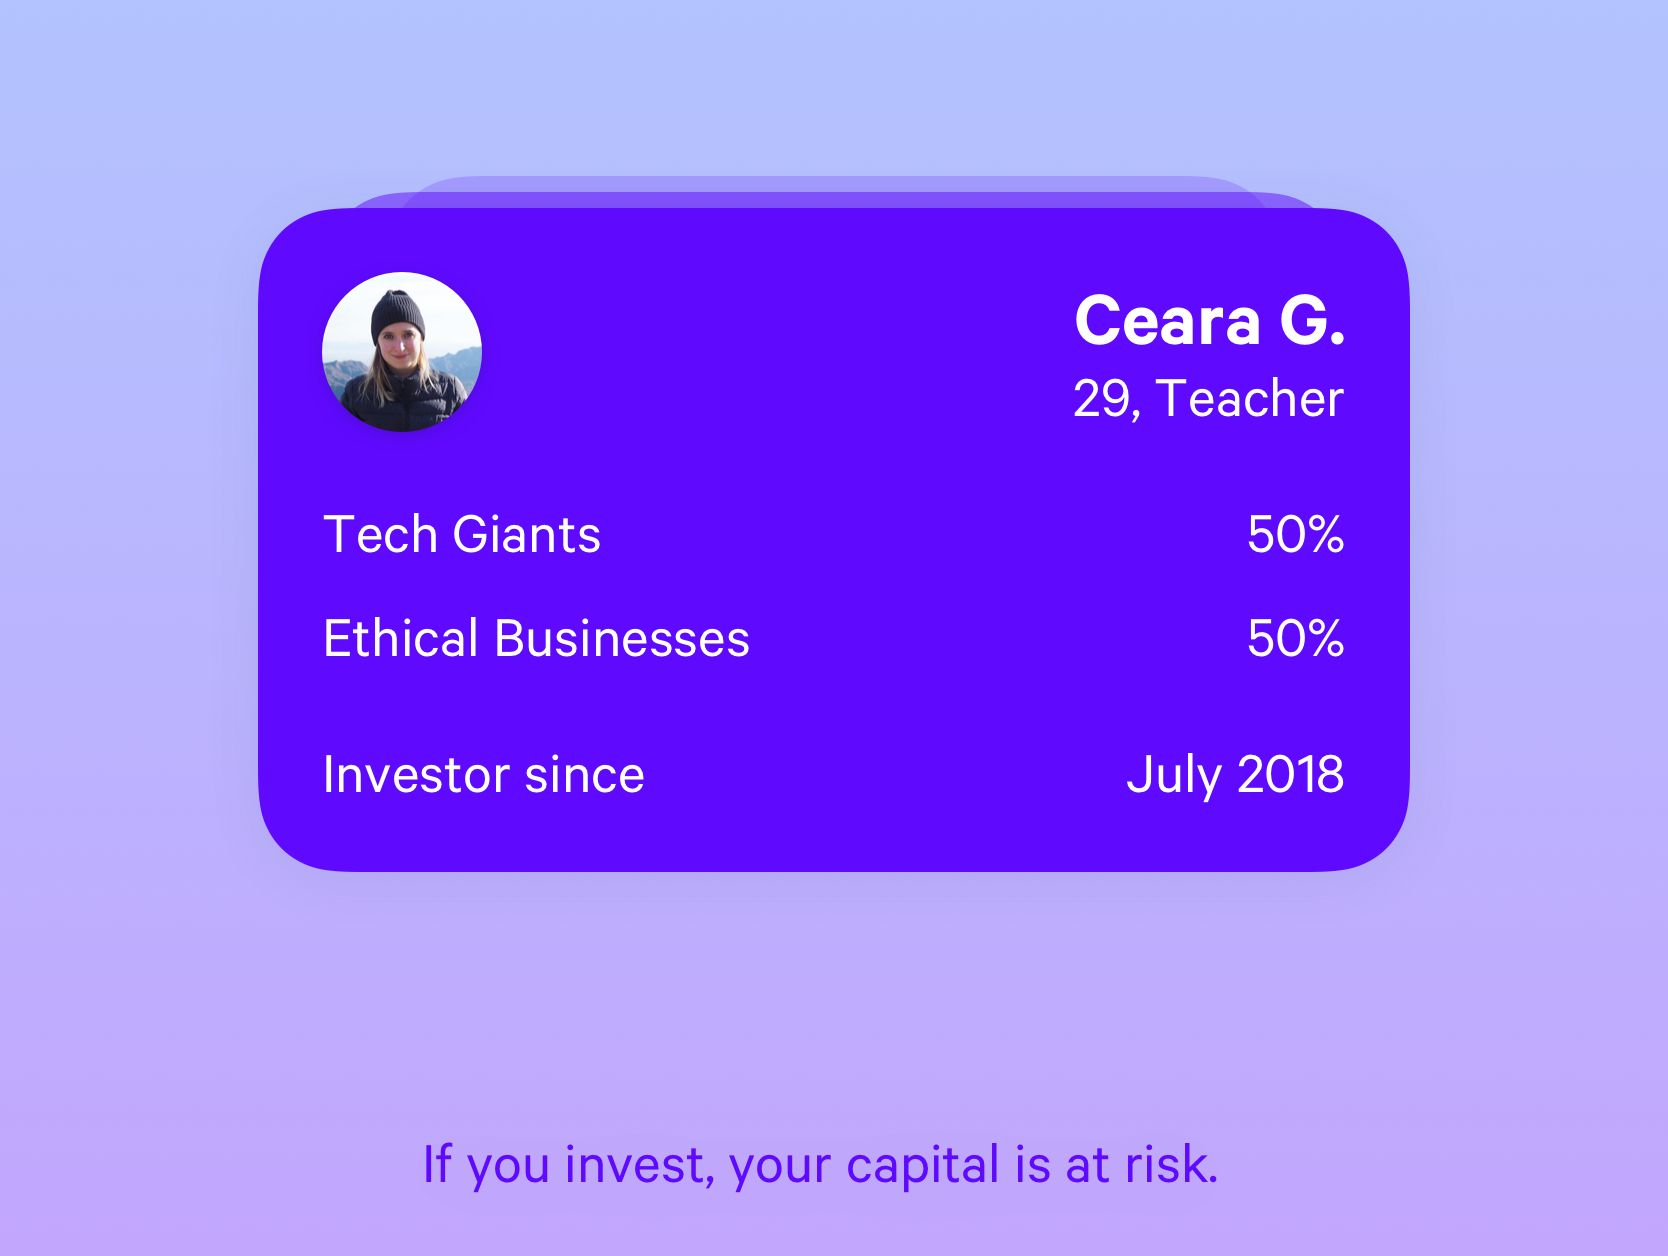 A profile card shows a Plum user with their choice of investment funds